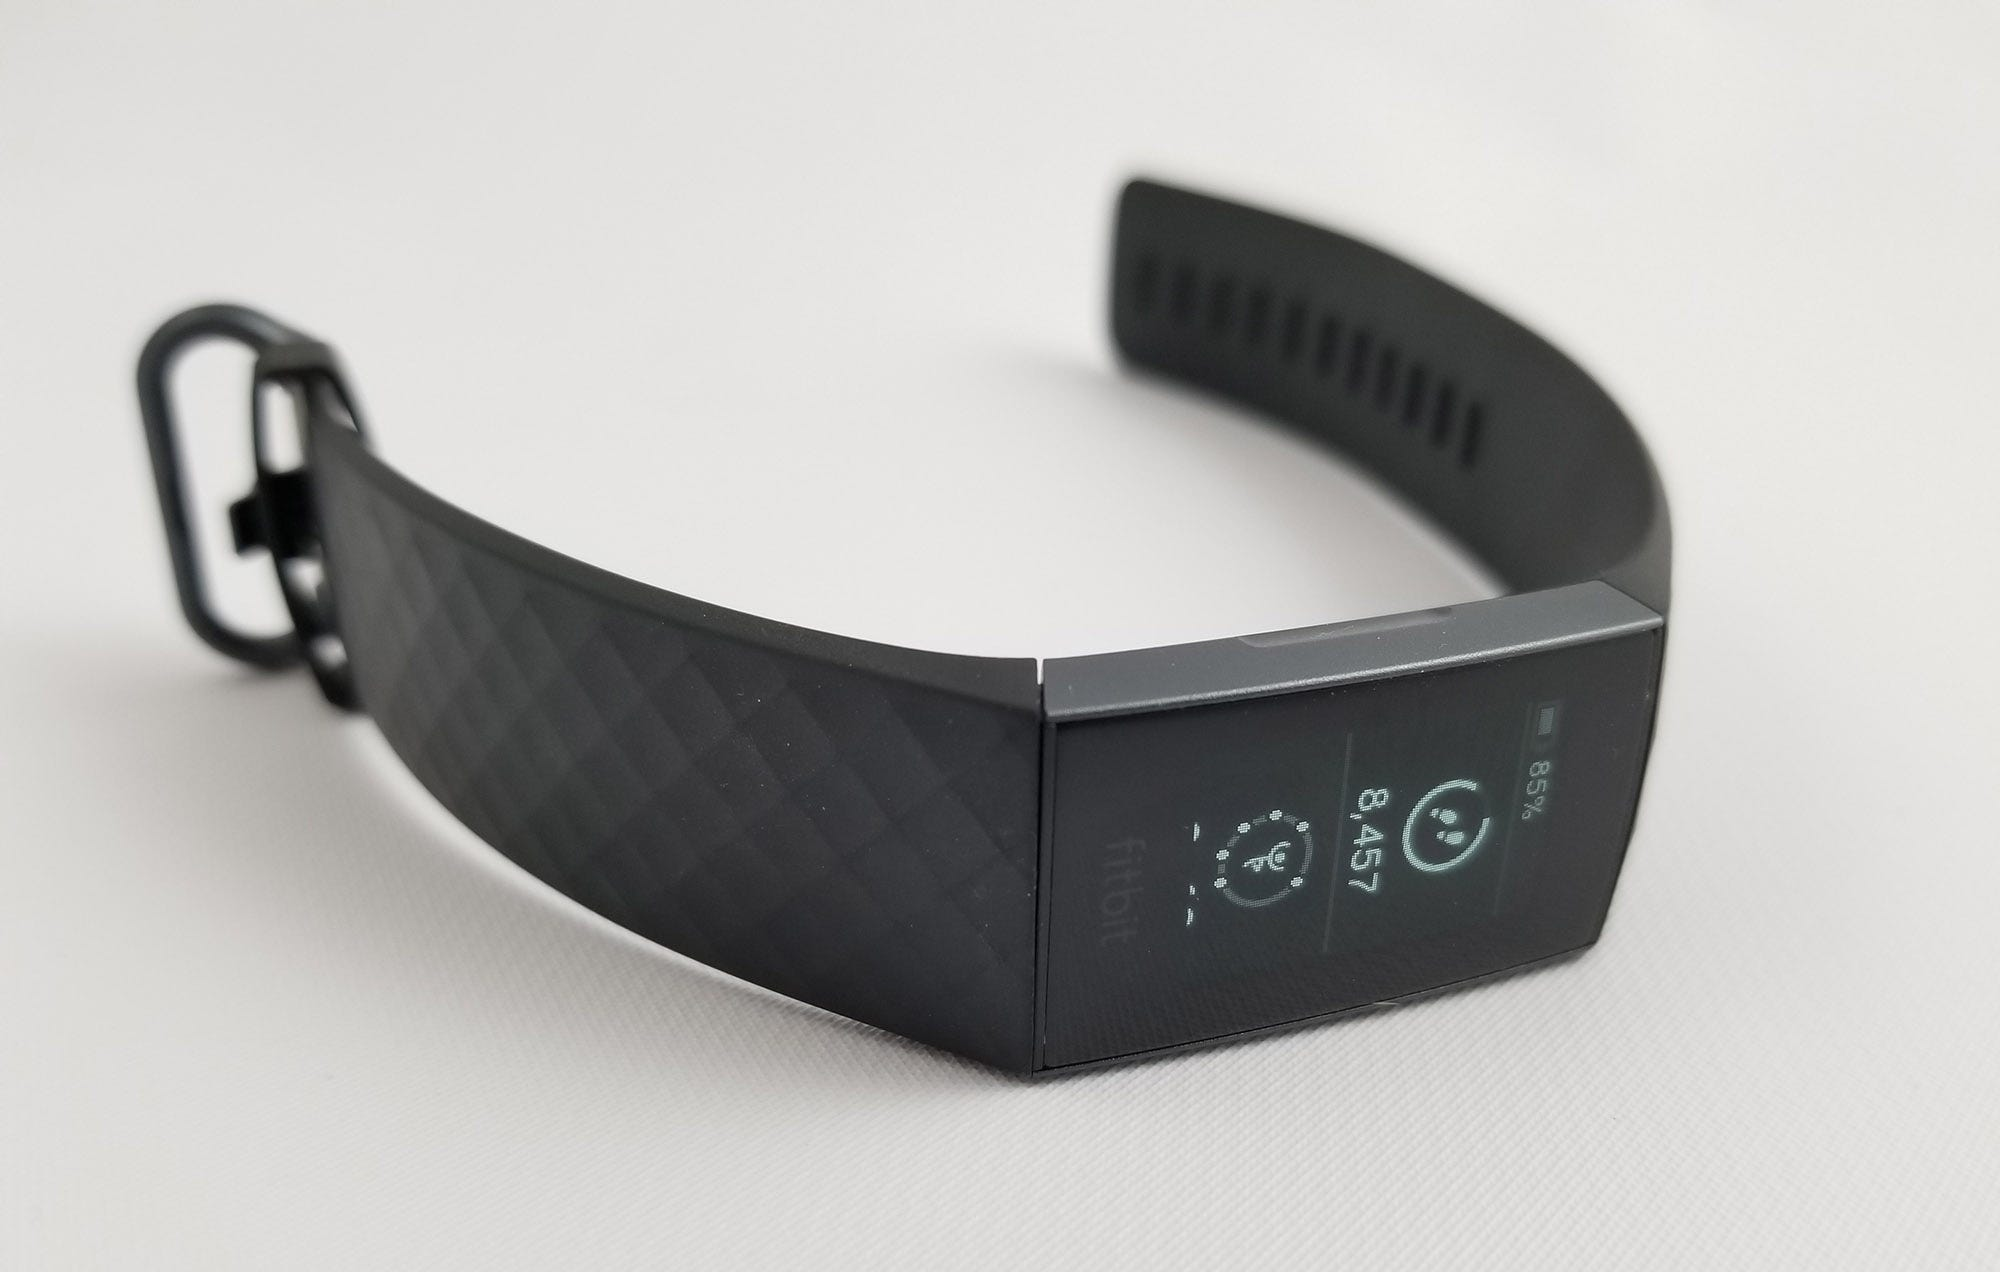 The Fitbit Charge 3 on a white background